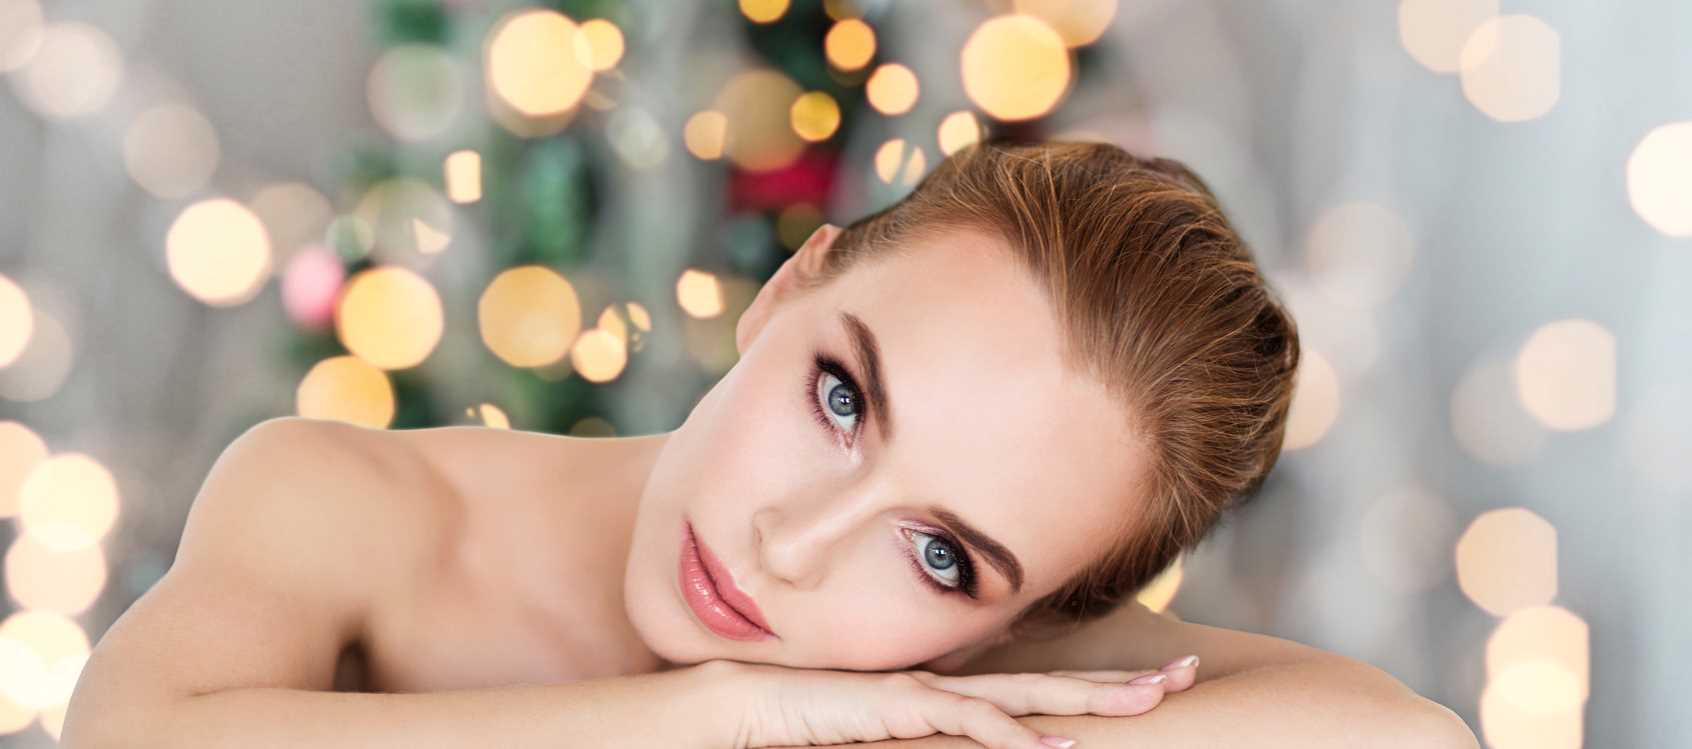 Our December 2017 Specials - Dermal Fillers Springfield MO